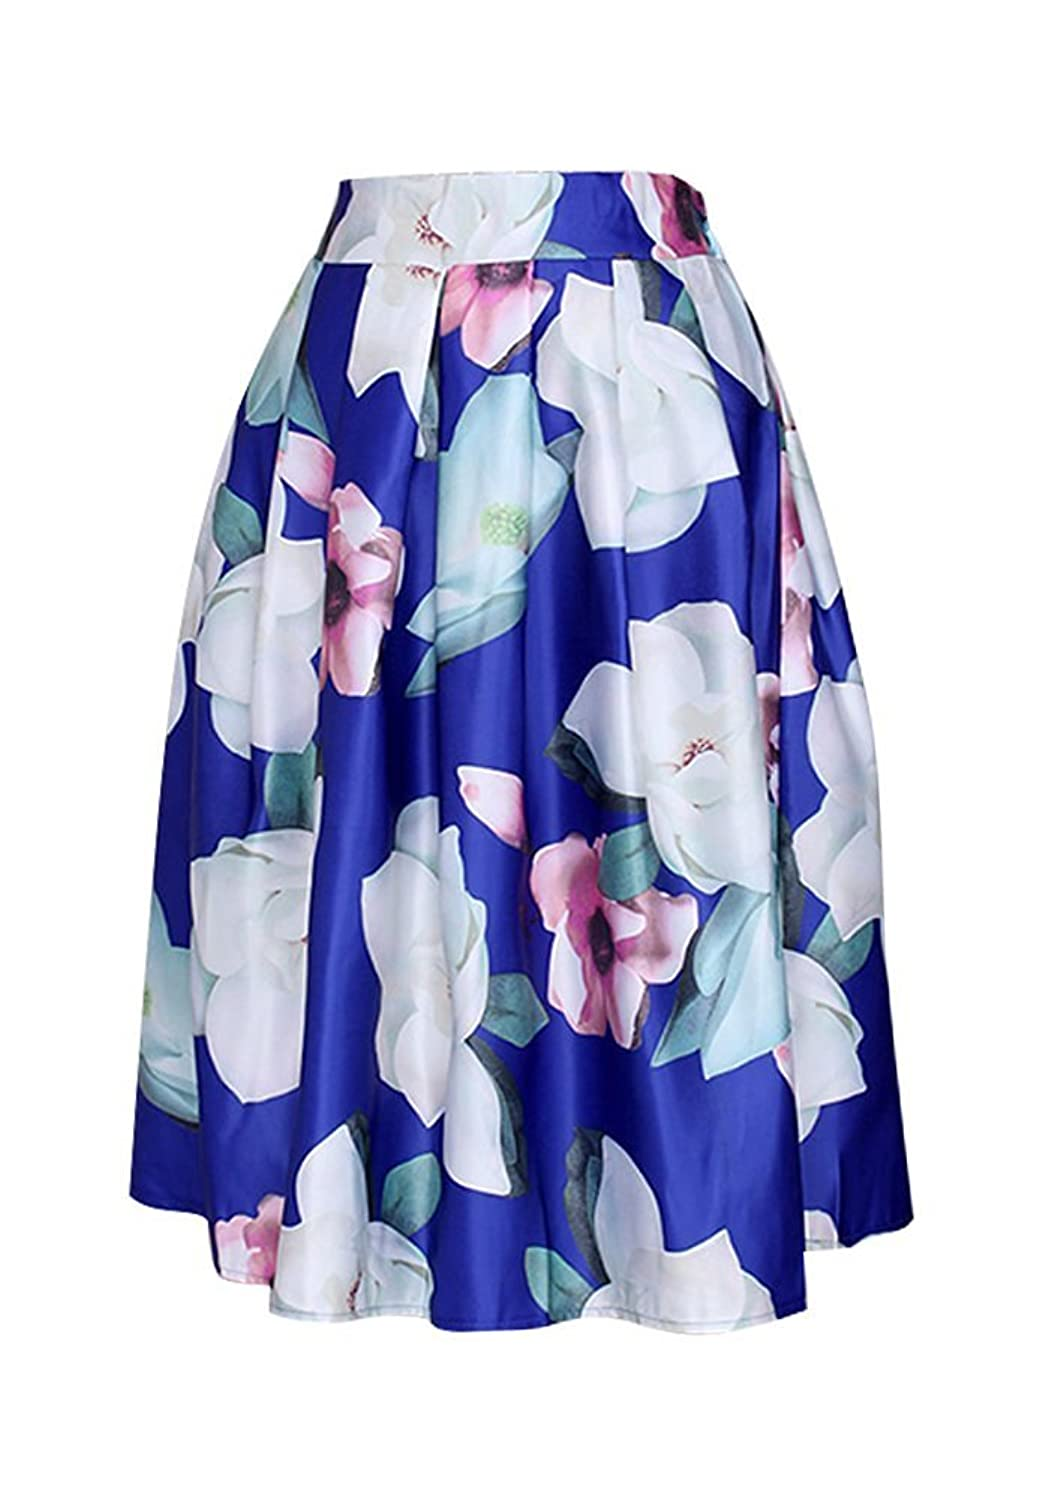 KOJHu Women's Vintage Pleated Floral Print Flared Casual Swing Skirts Blue XXL